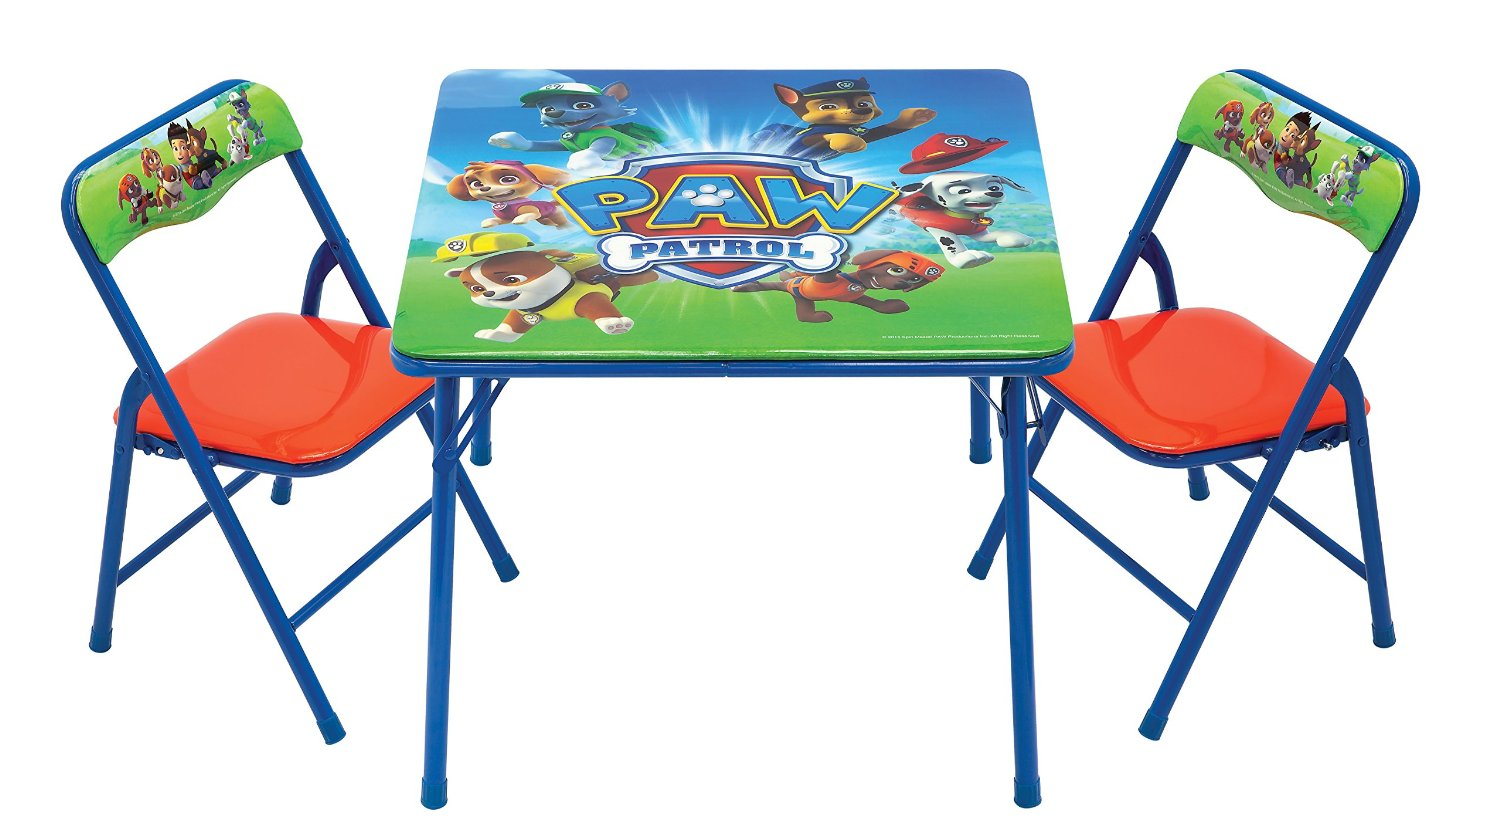 baby chairs for eating how to raise a office chair height paw patrol activity table and by kids only! - nickelodeon